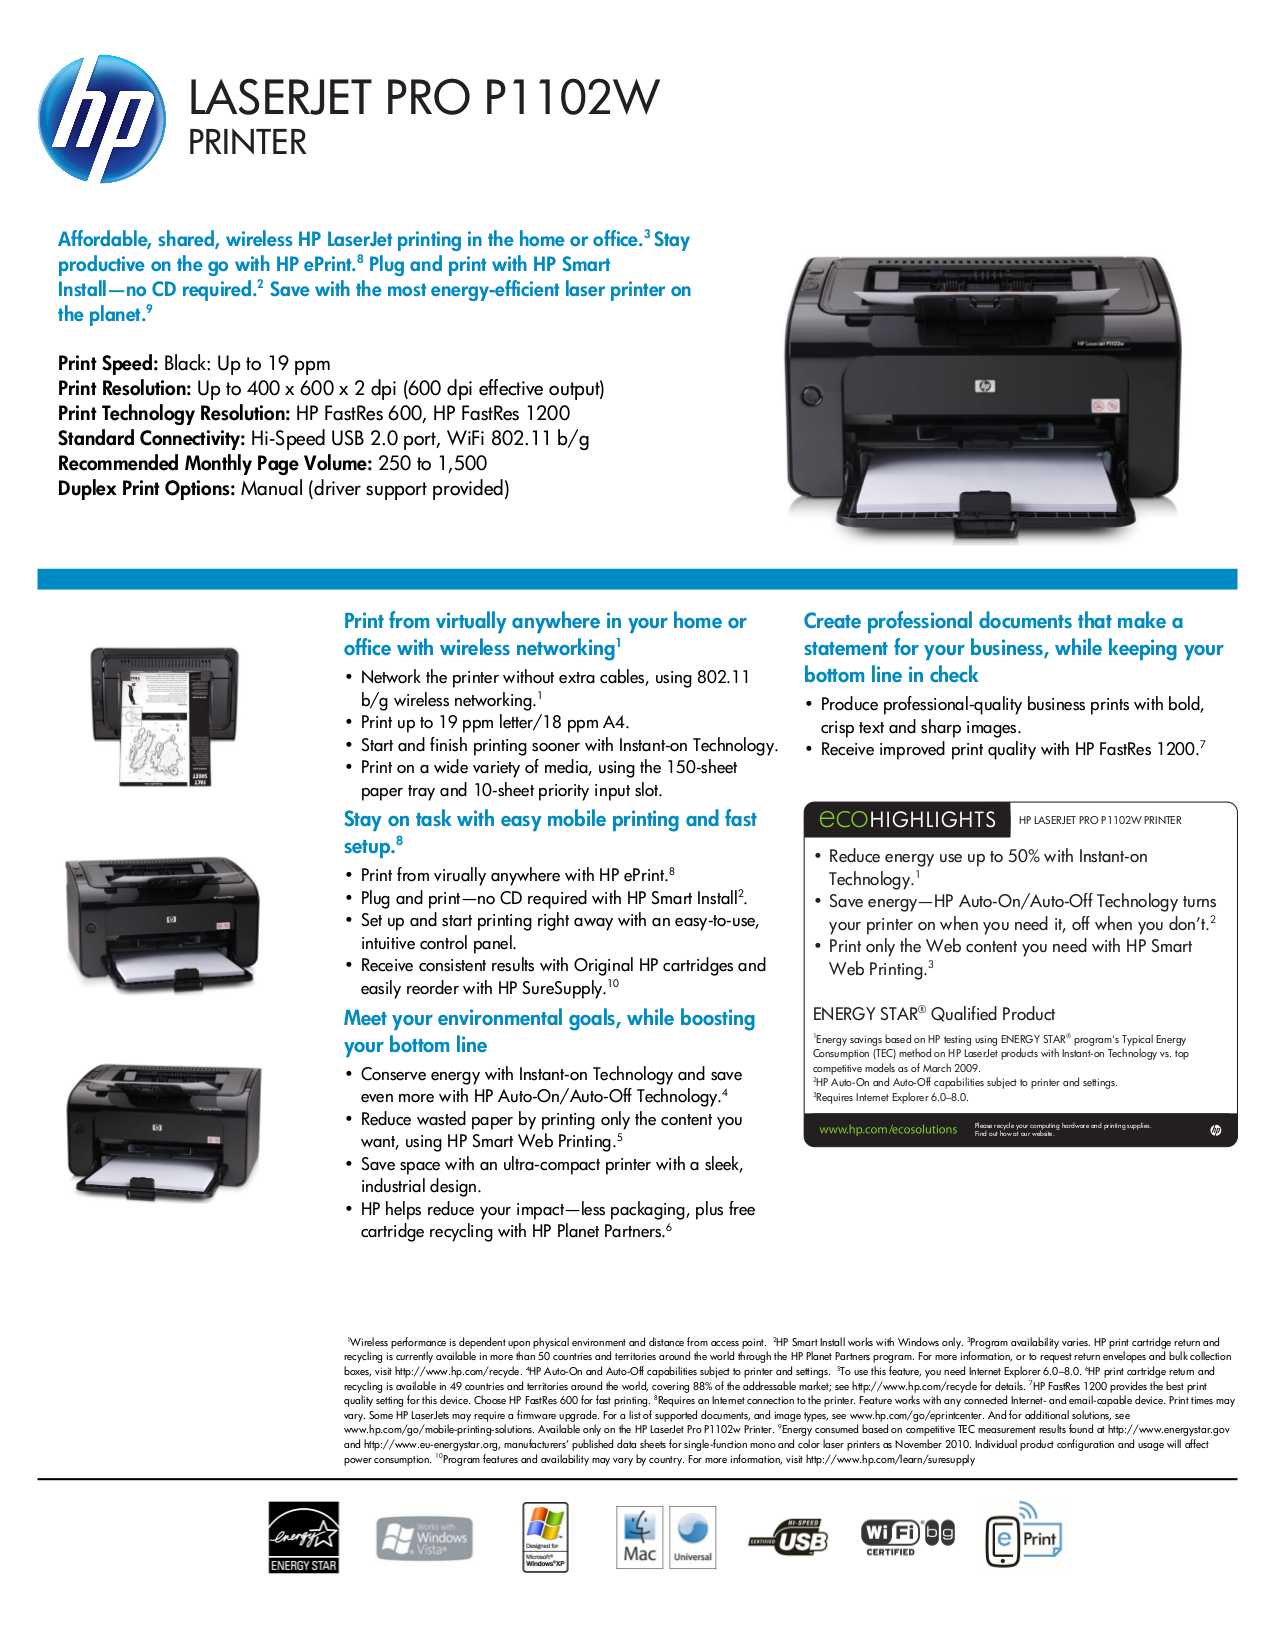 download free pdf for hp laserjet color laserjet pro p1102w printer rh umlib com HP LaserJet P1102w Problems Install HP LaserJet P1102w Printer